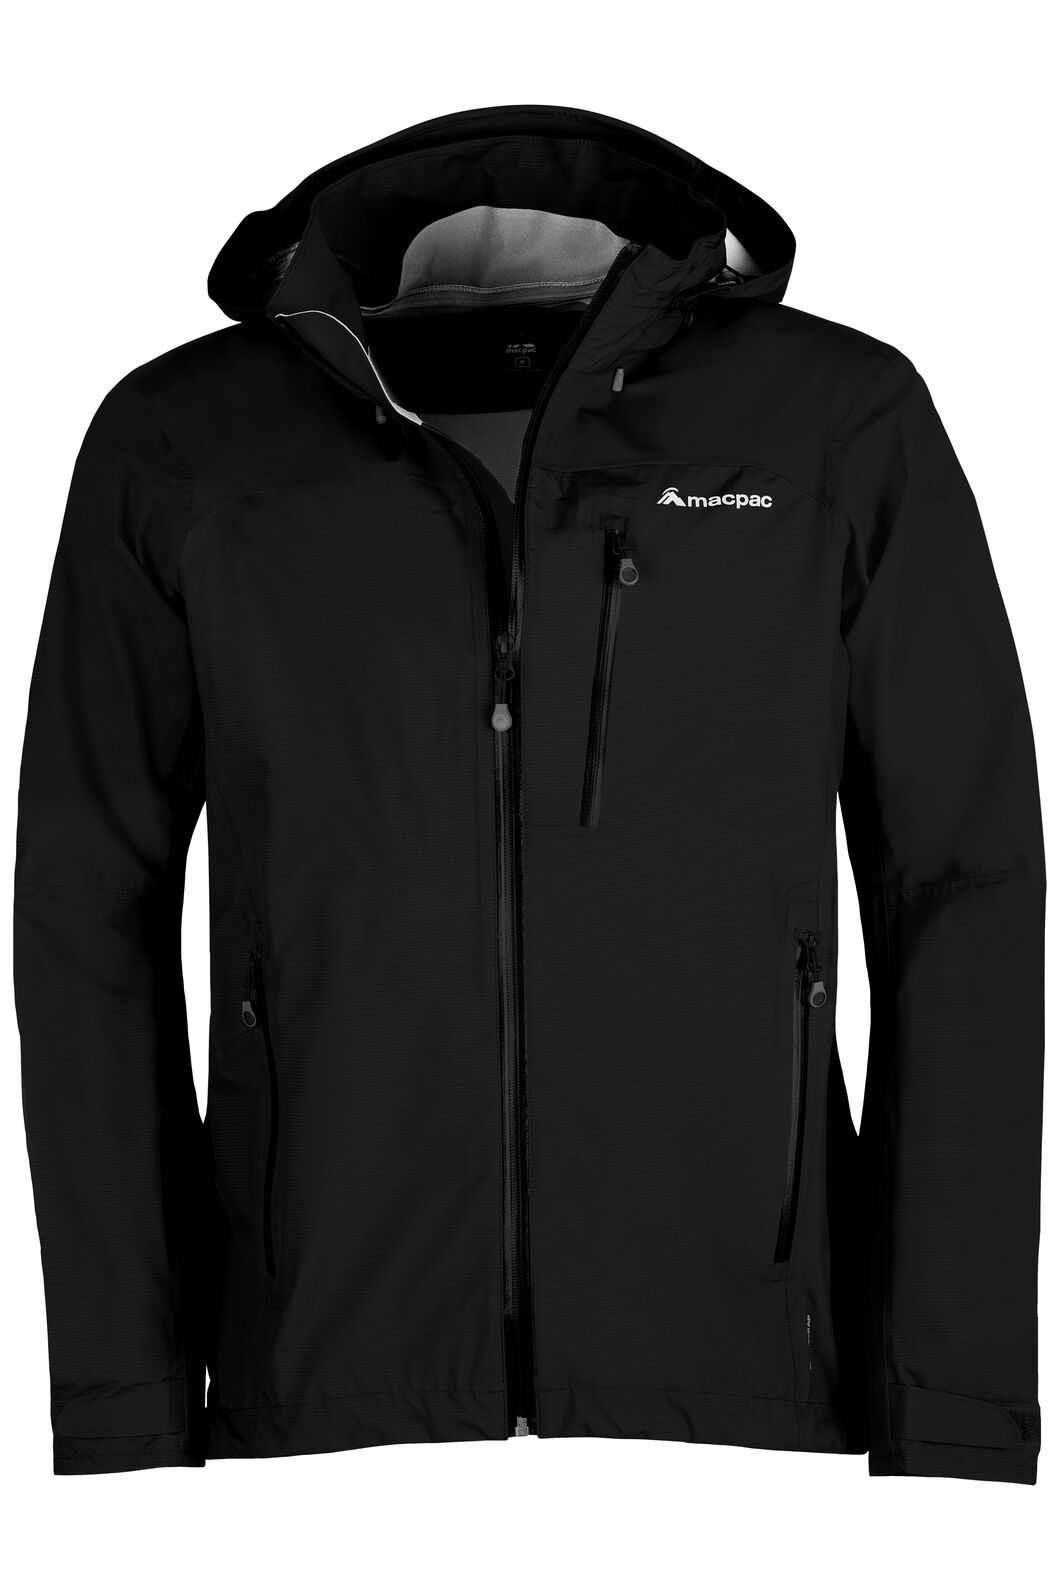 Macpac Traverse Pertex®Rain Jacket - Men's, Black, hi-res